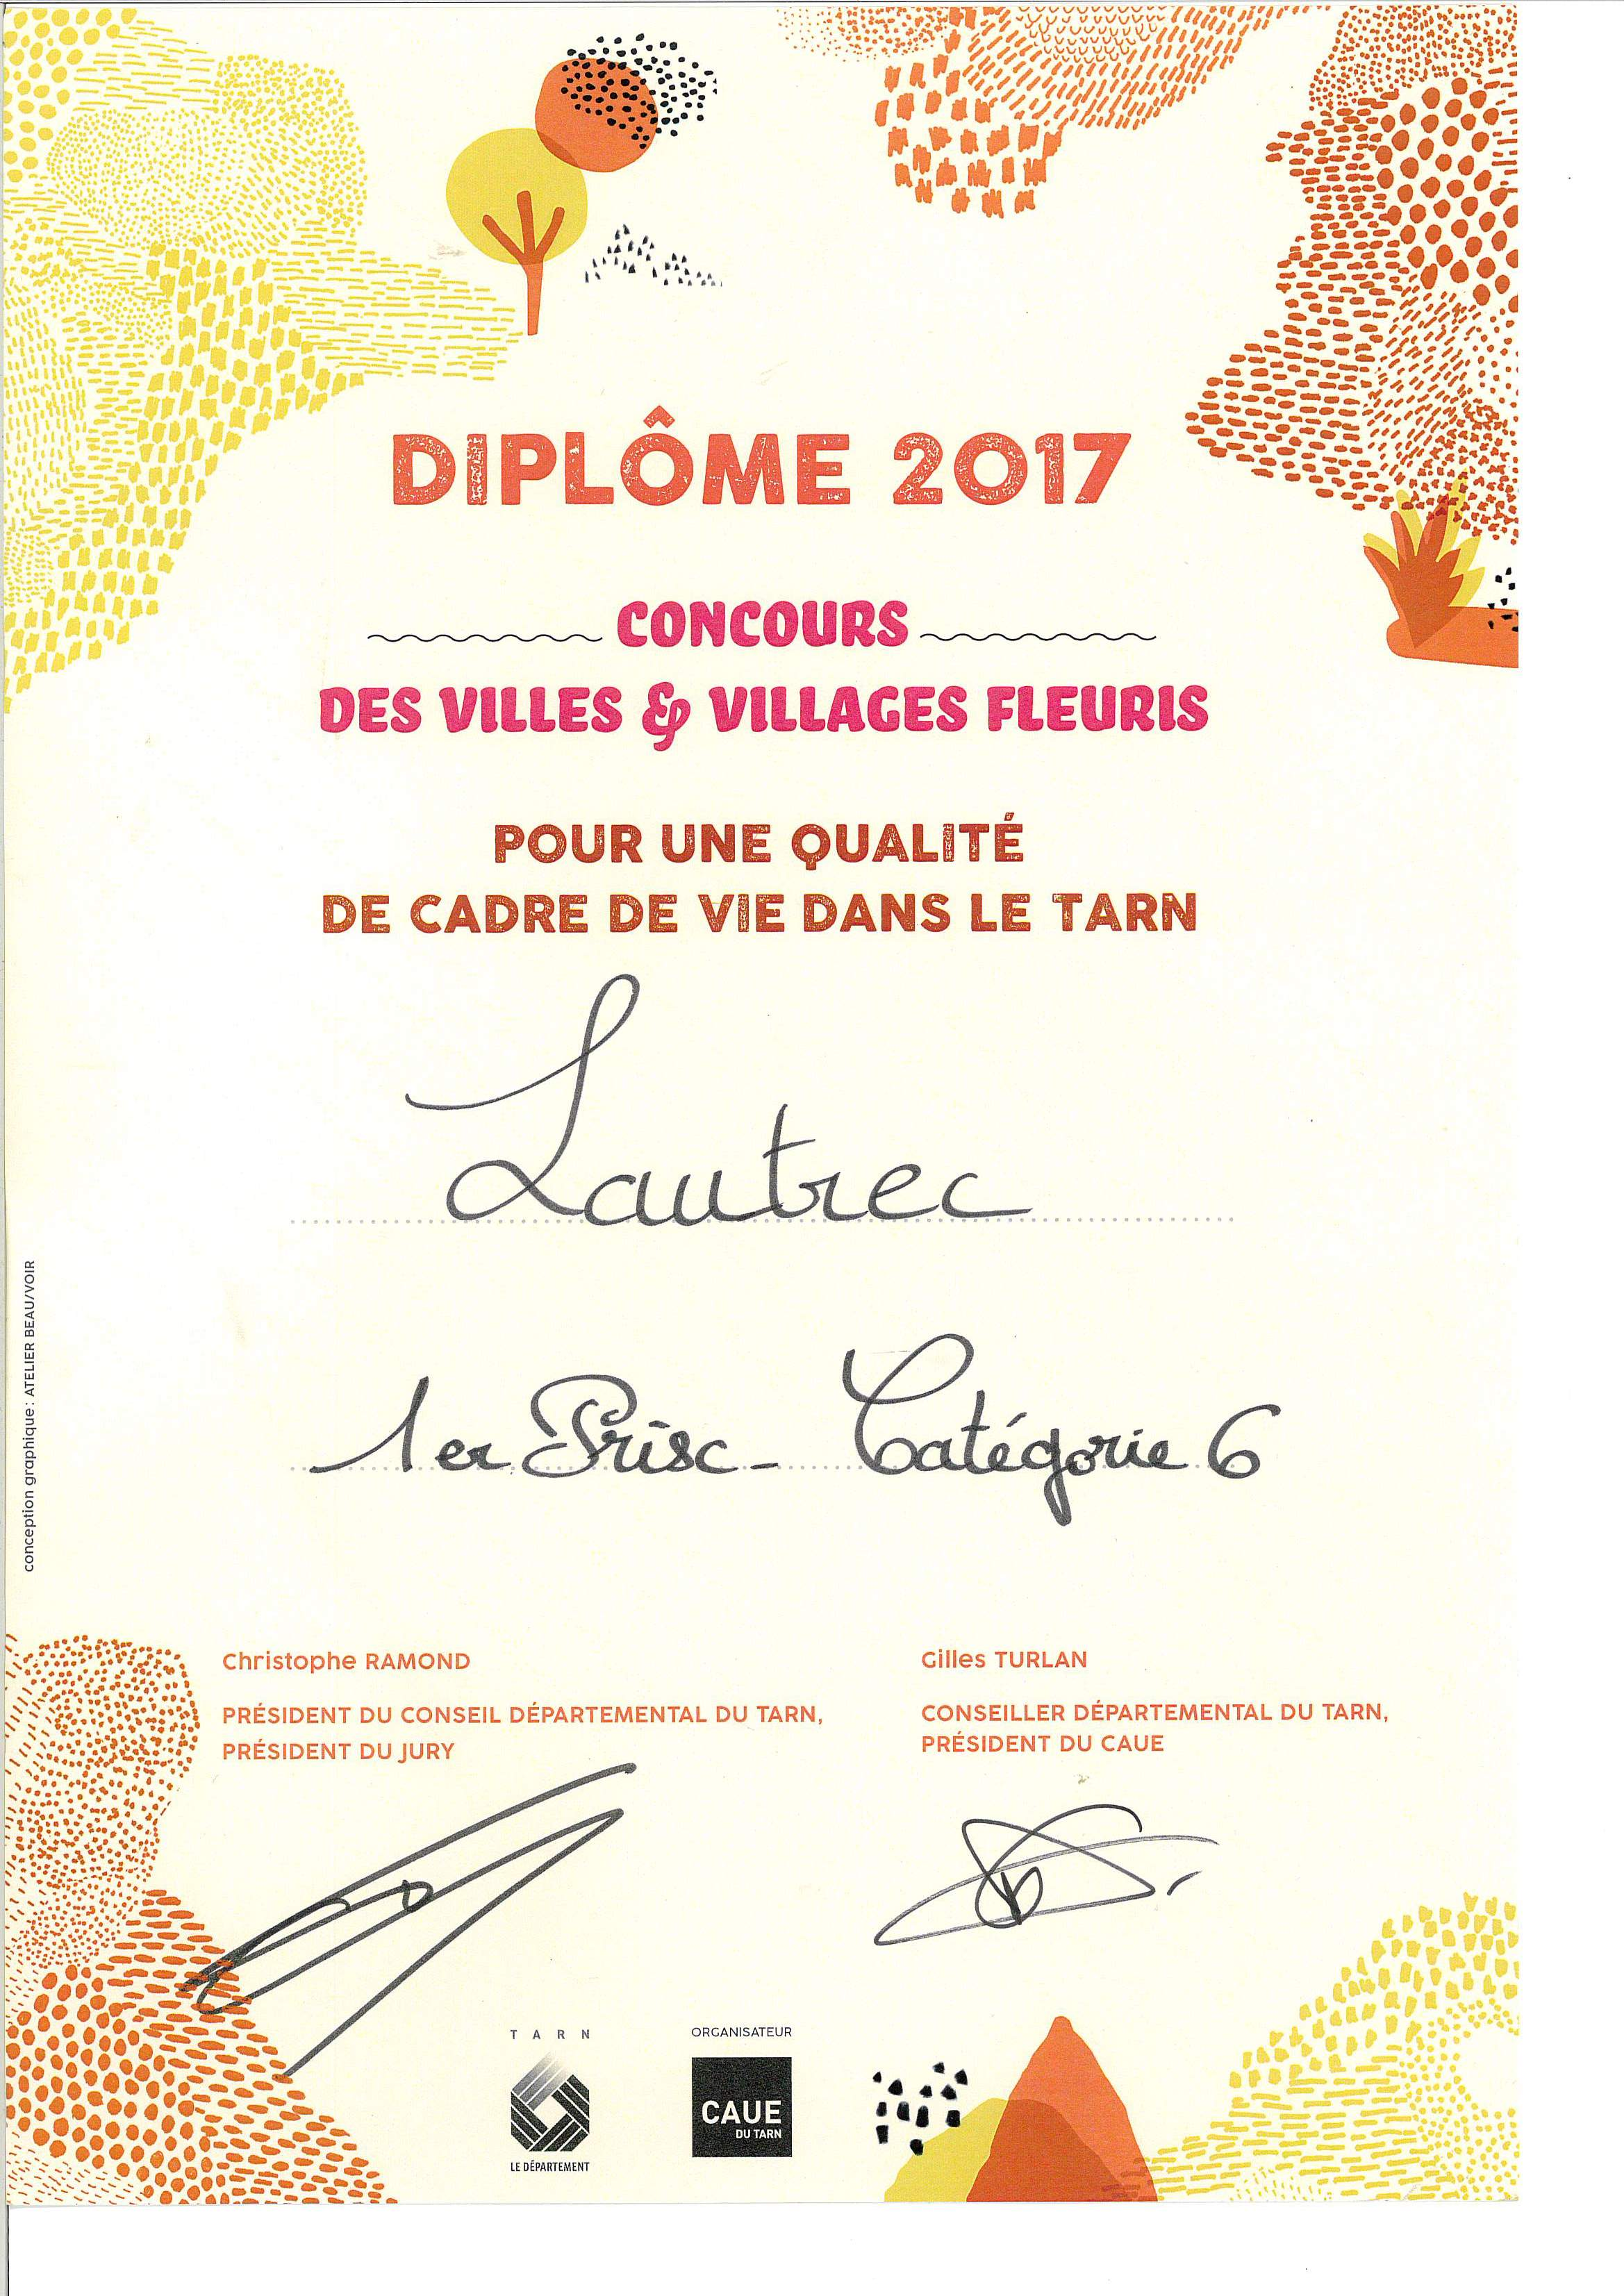 DIPLOME CONCOURS 2017